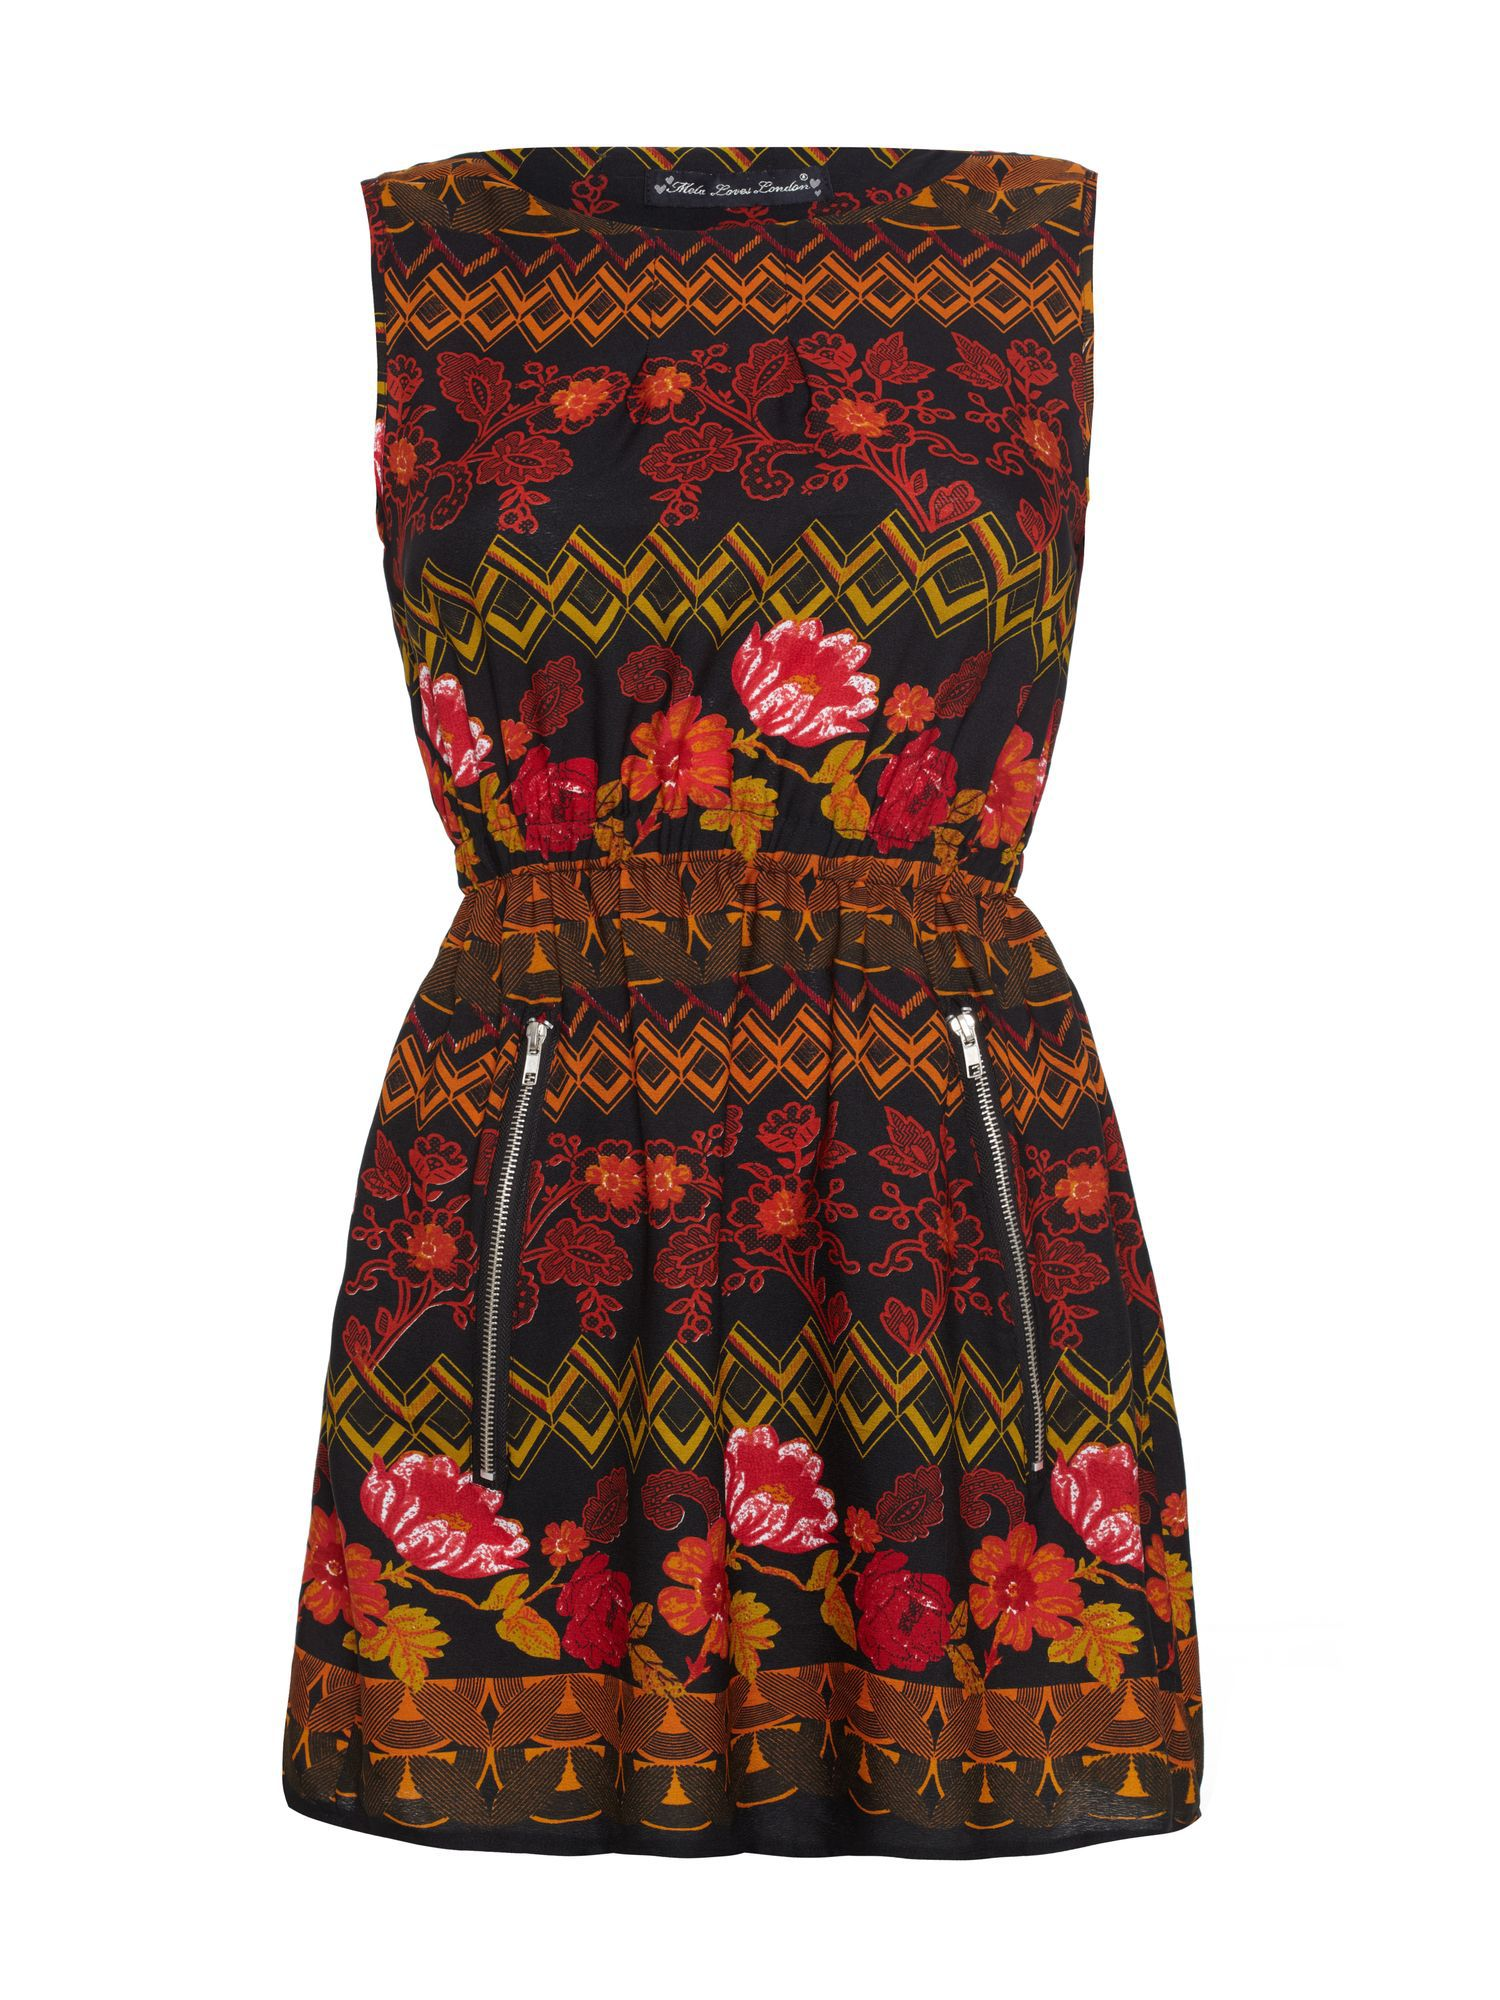 Aztec floral printed zip dress